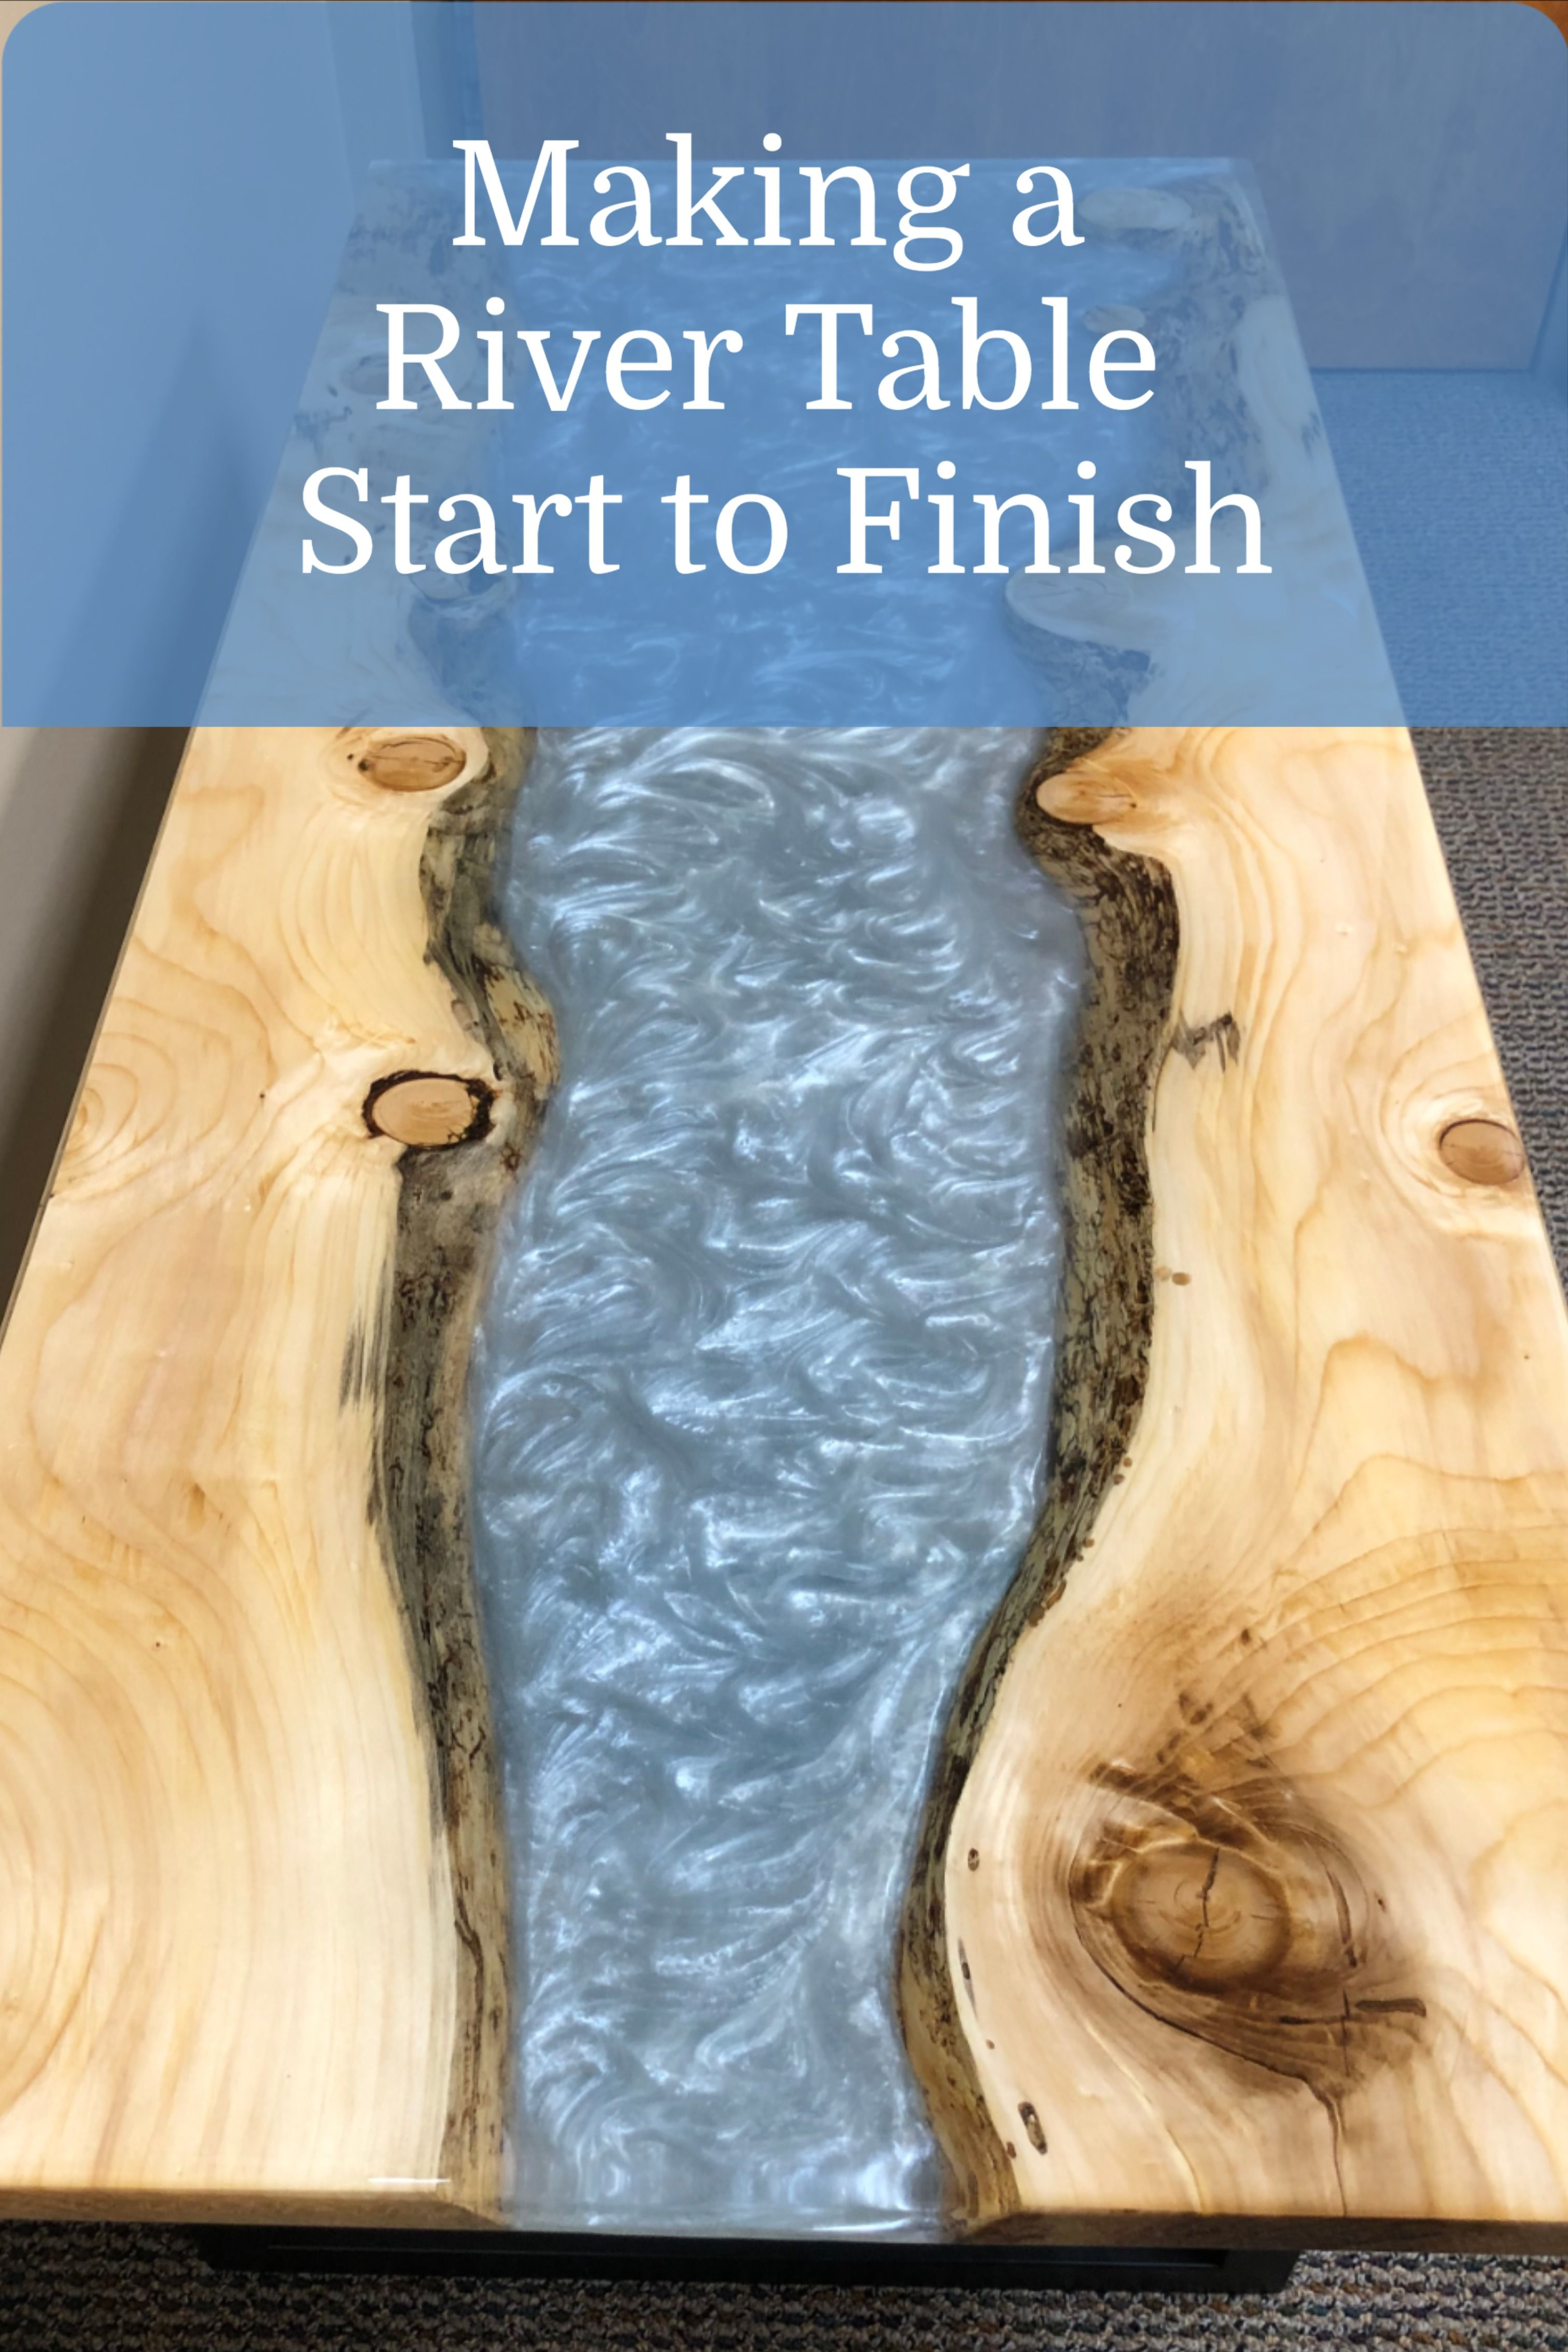 Epoxy Resin Table: How to make a river table start